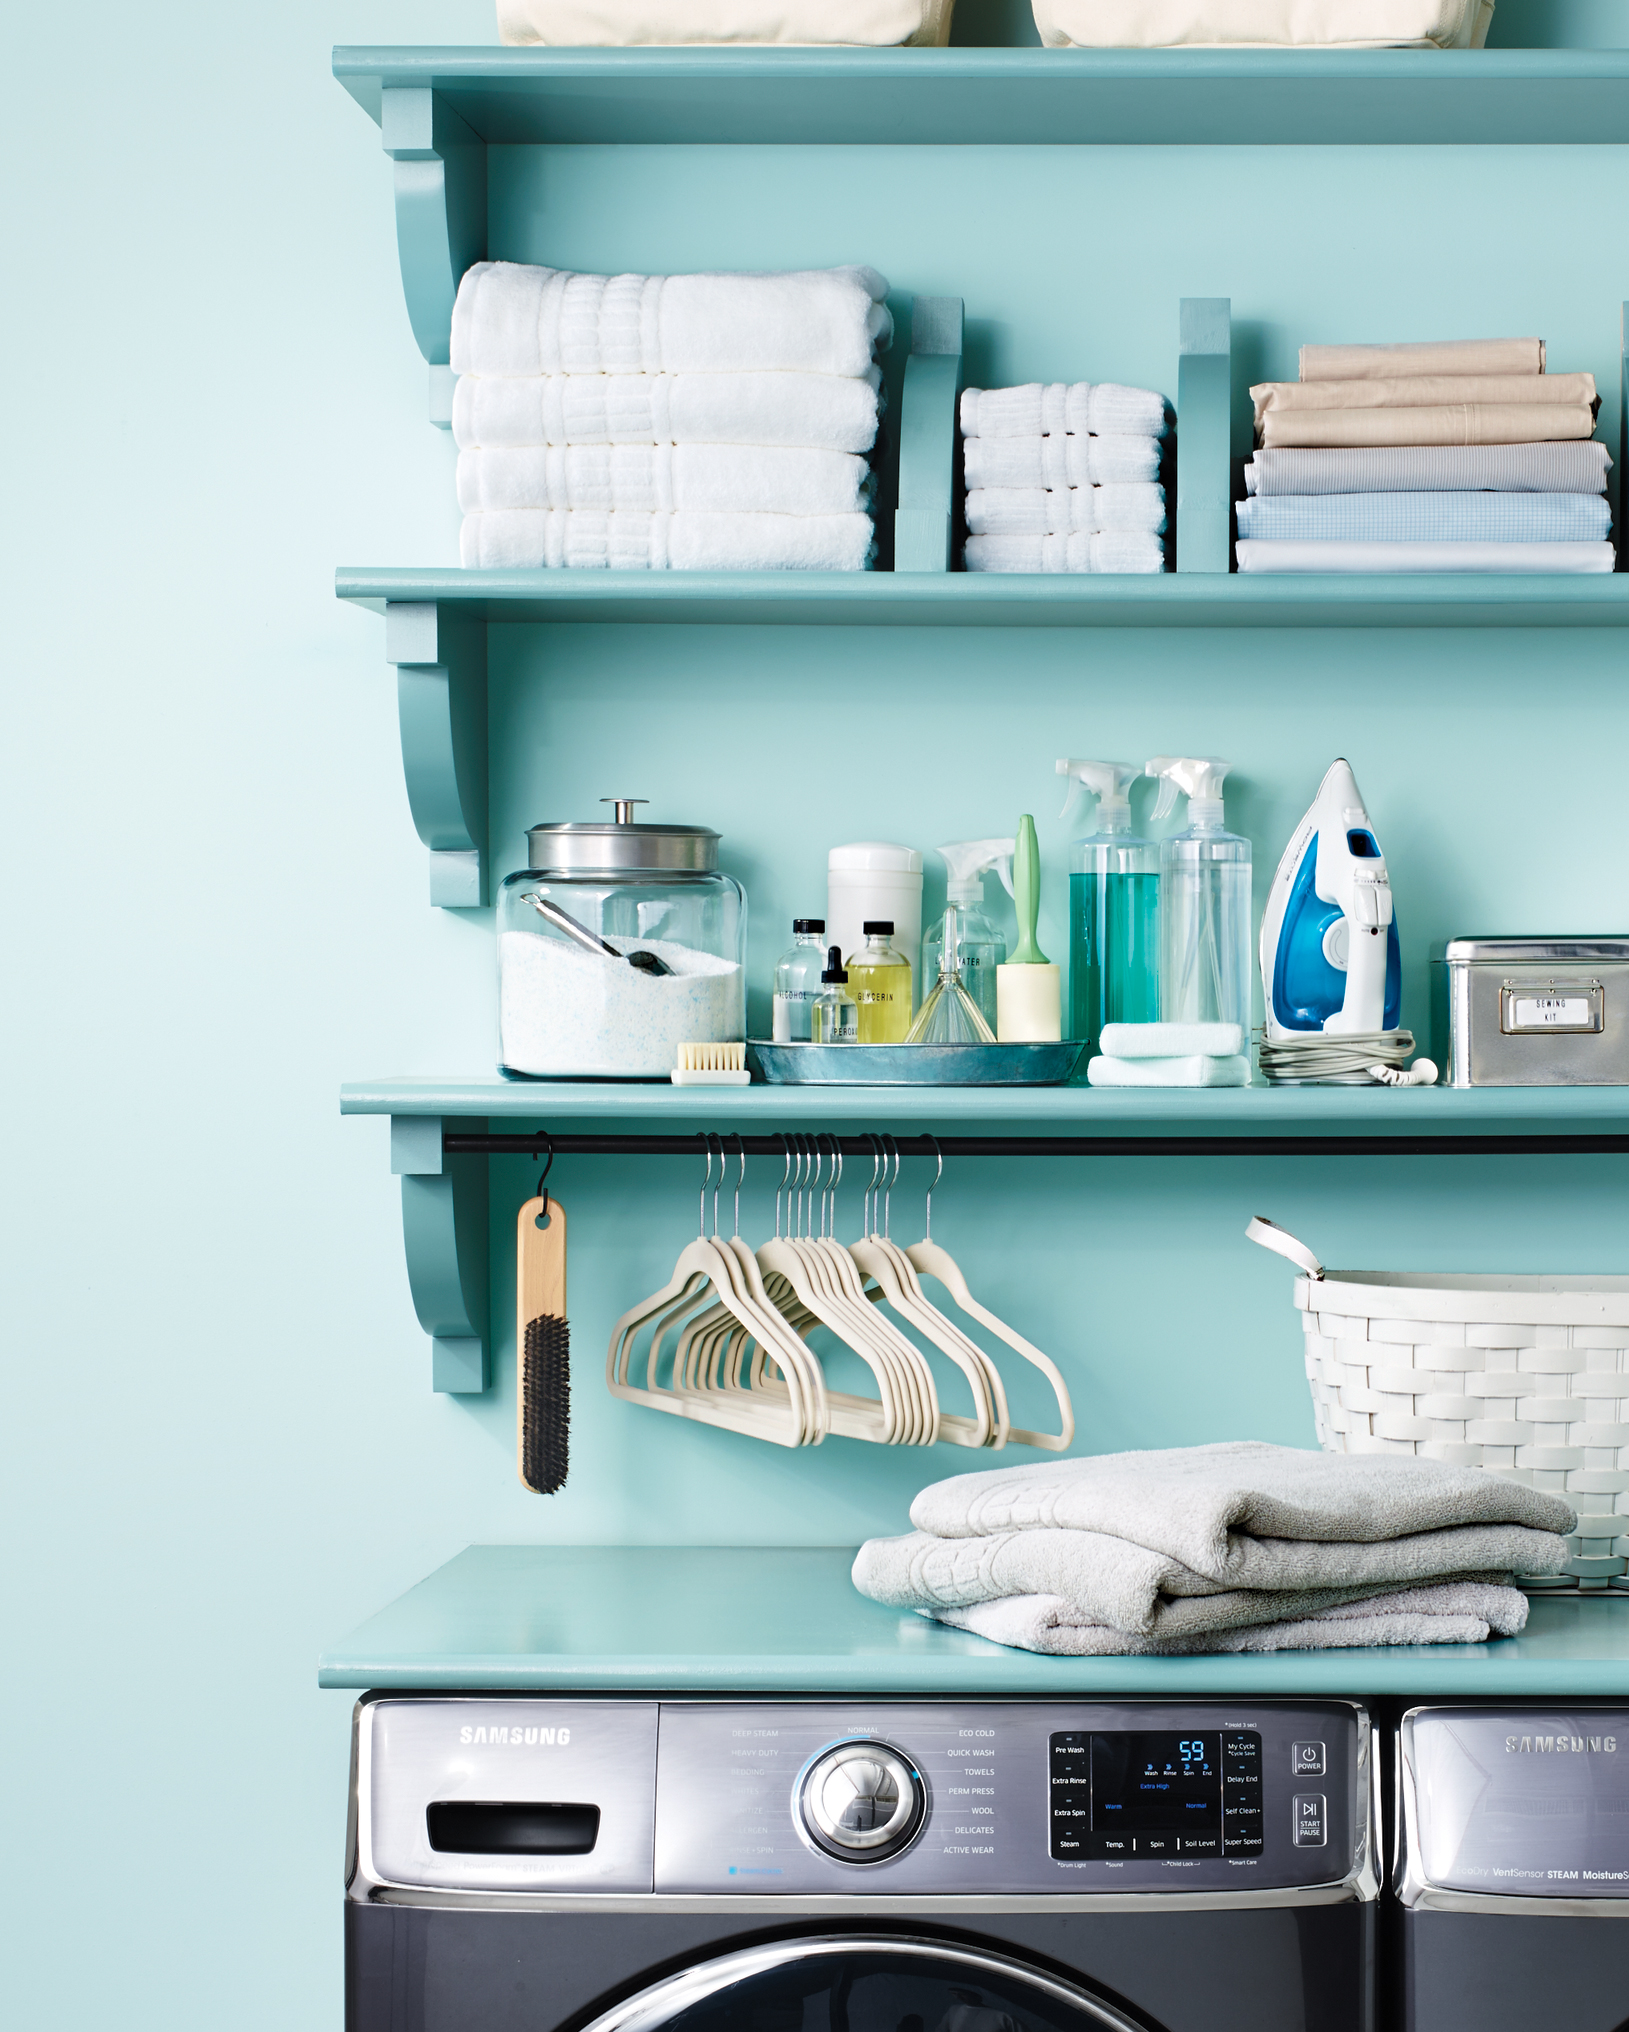 shelving-laundry-room-113-d112185.jpg